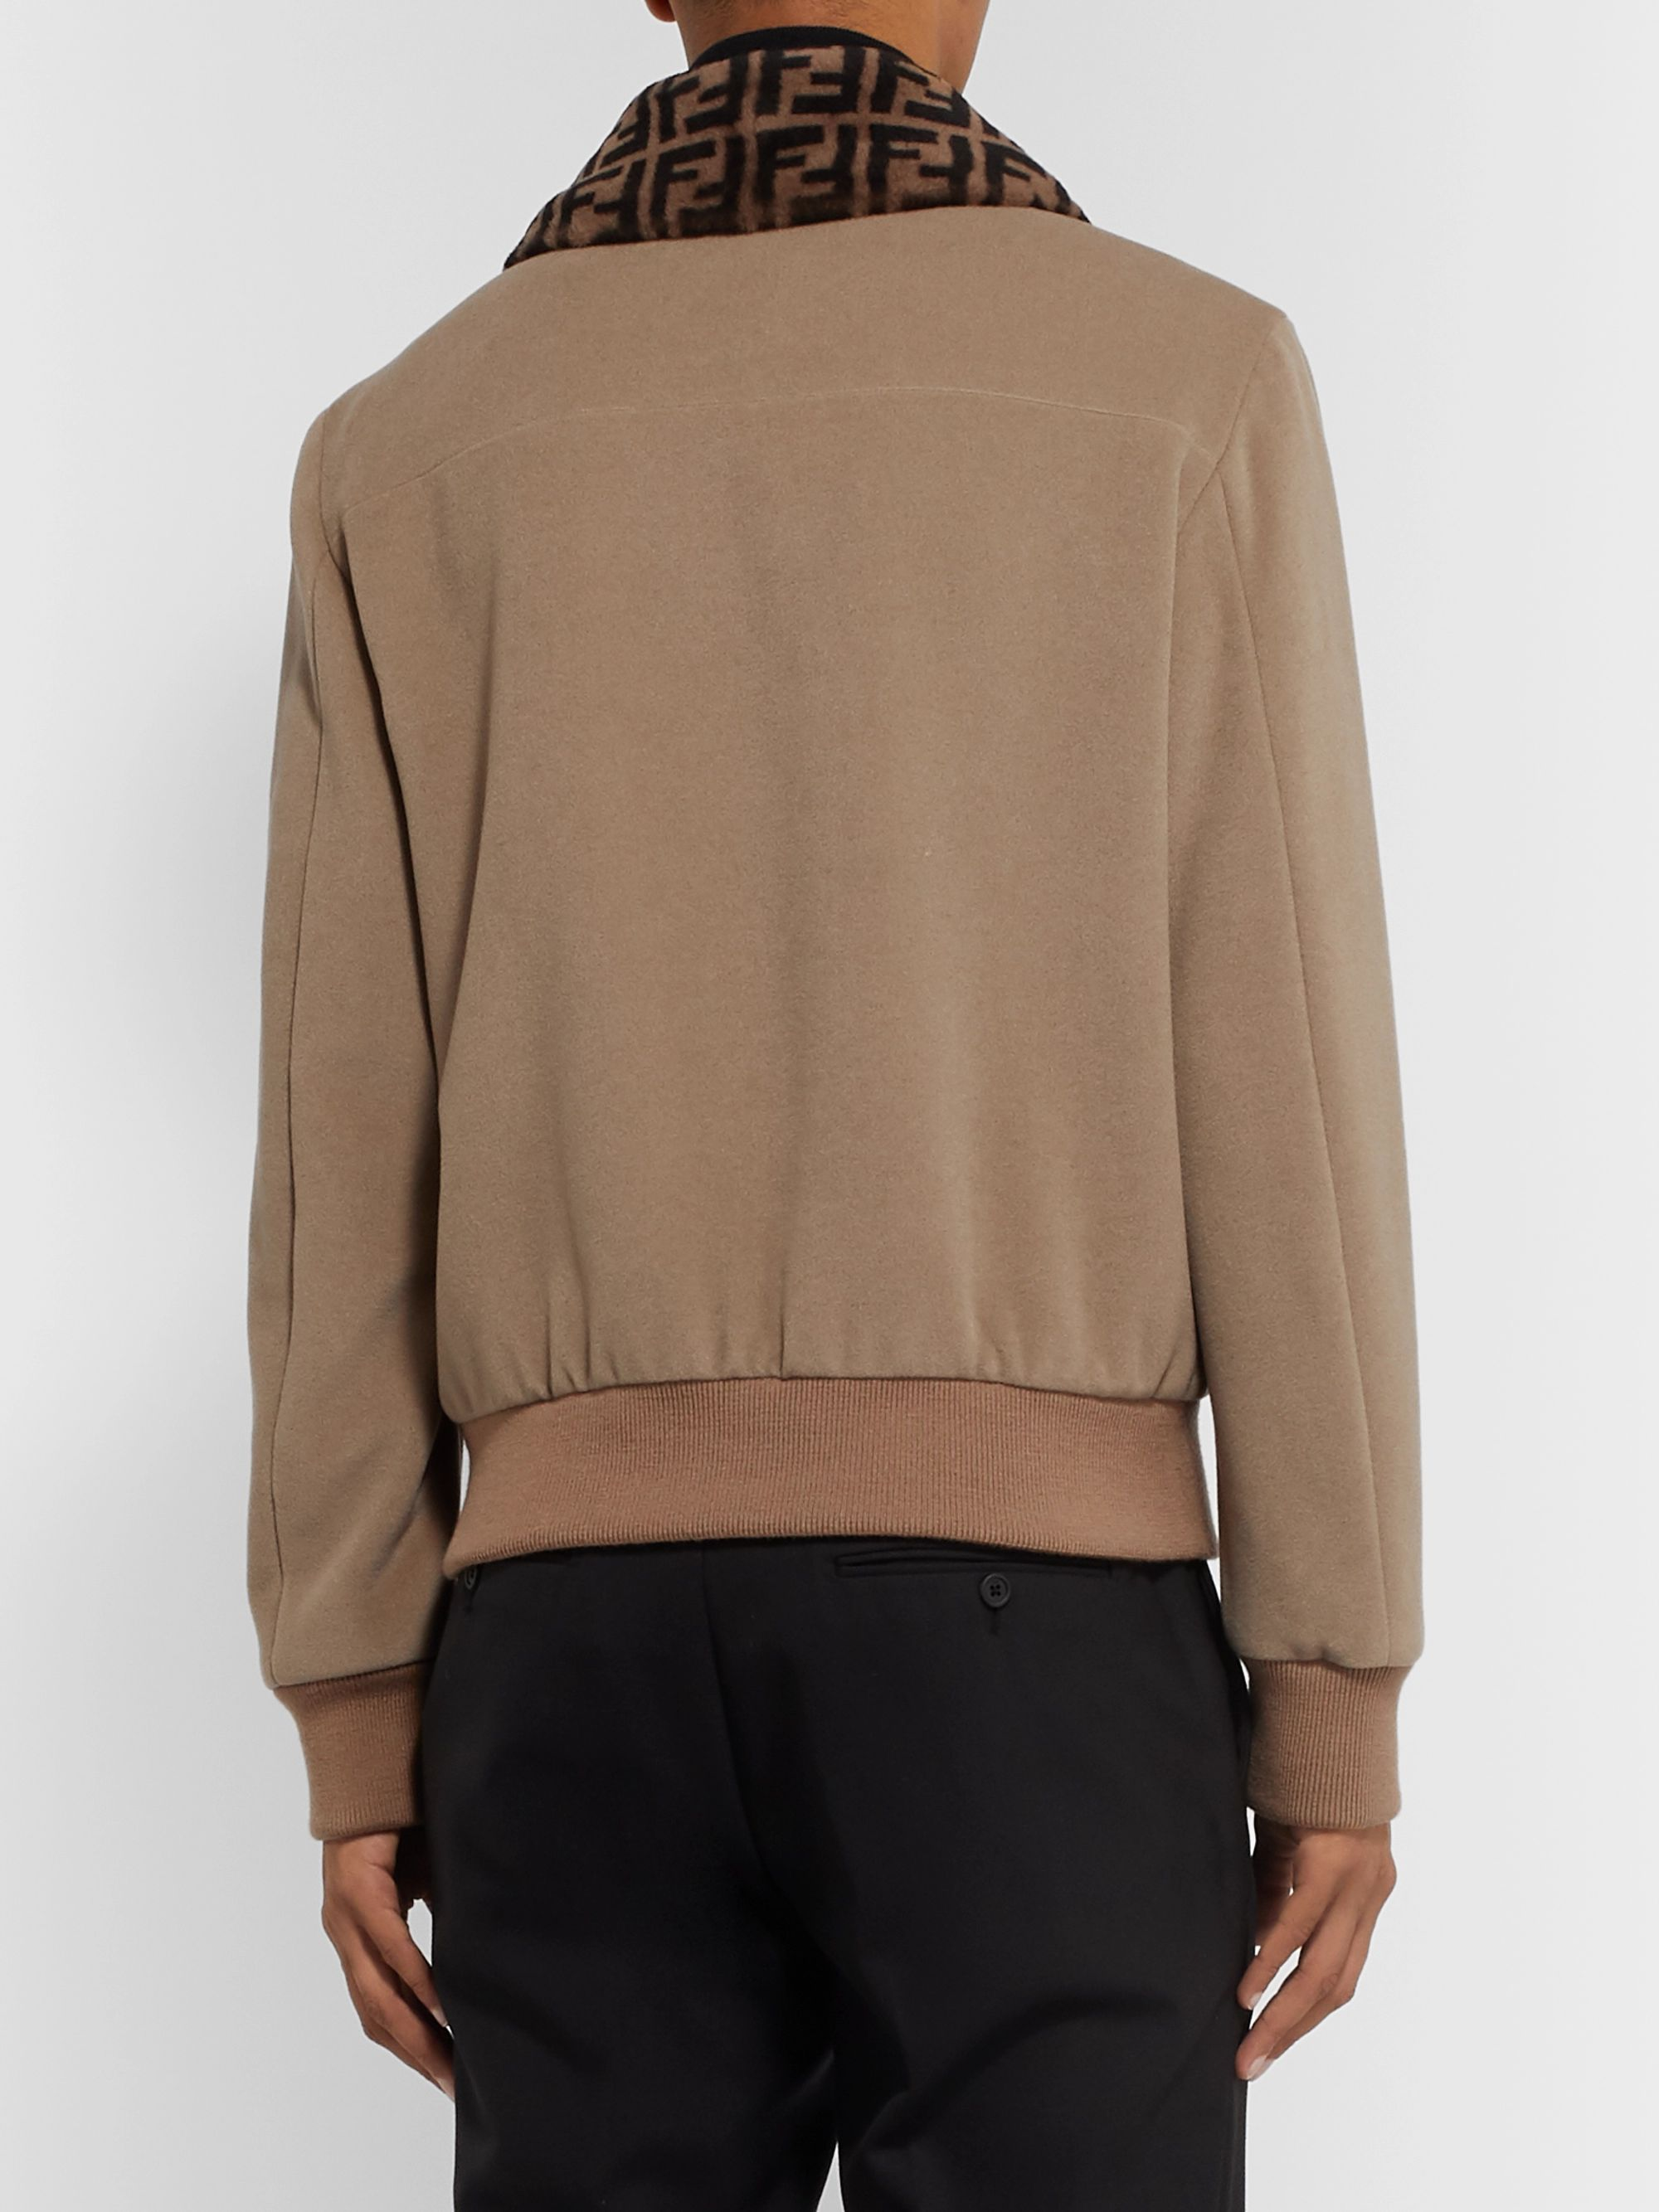 Fendi Shearling-Trimmed Wool-Fleece Blouson Jacket